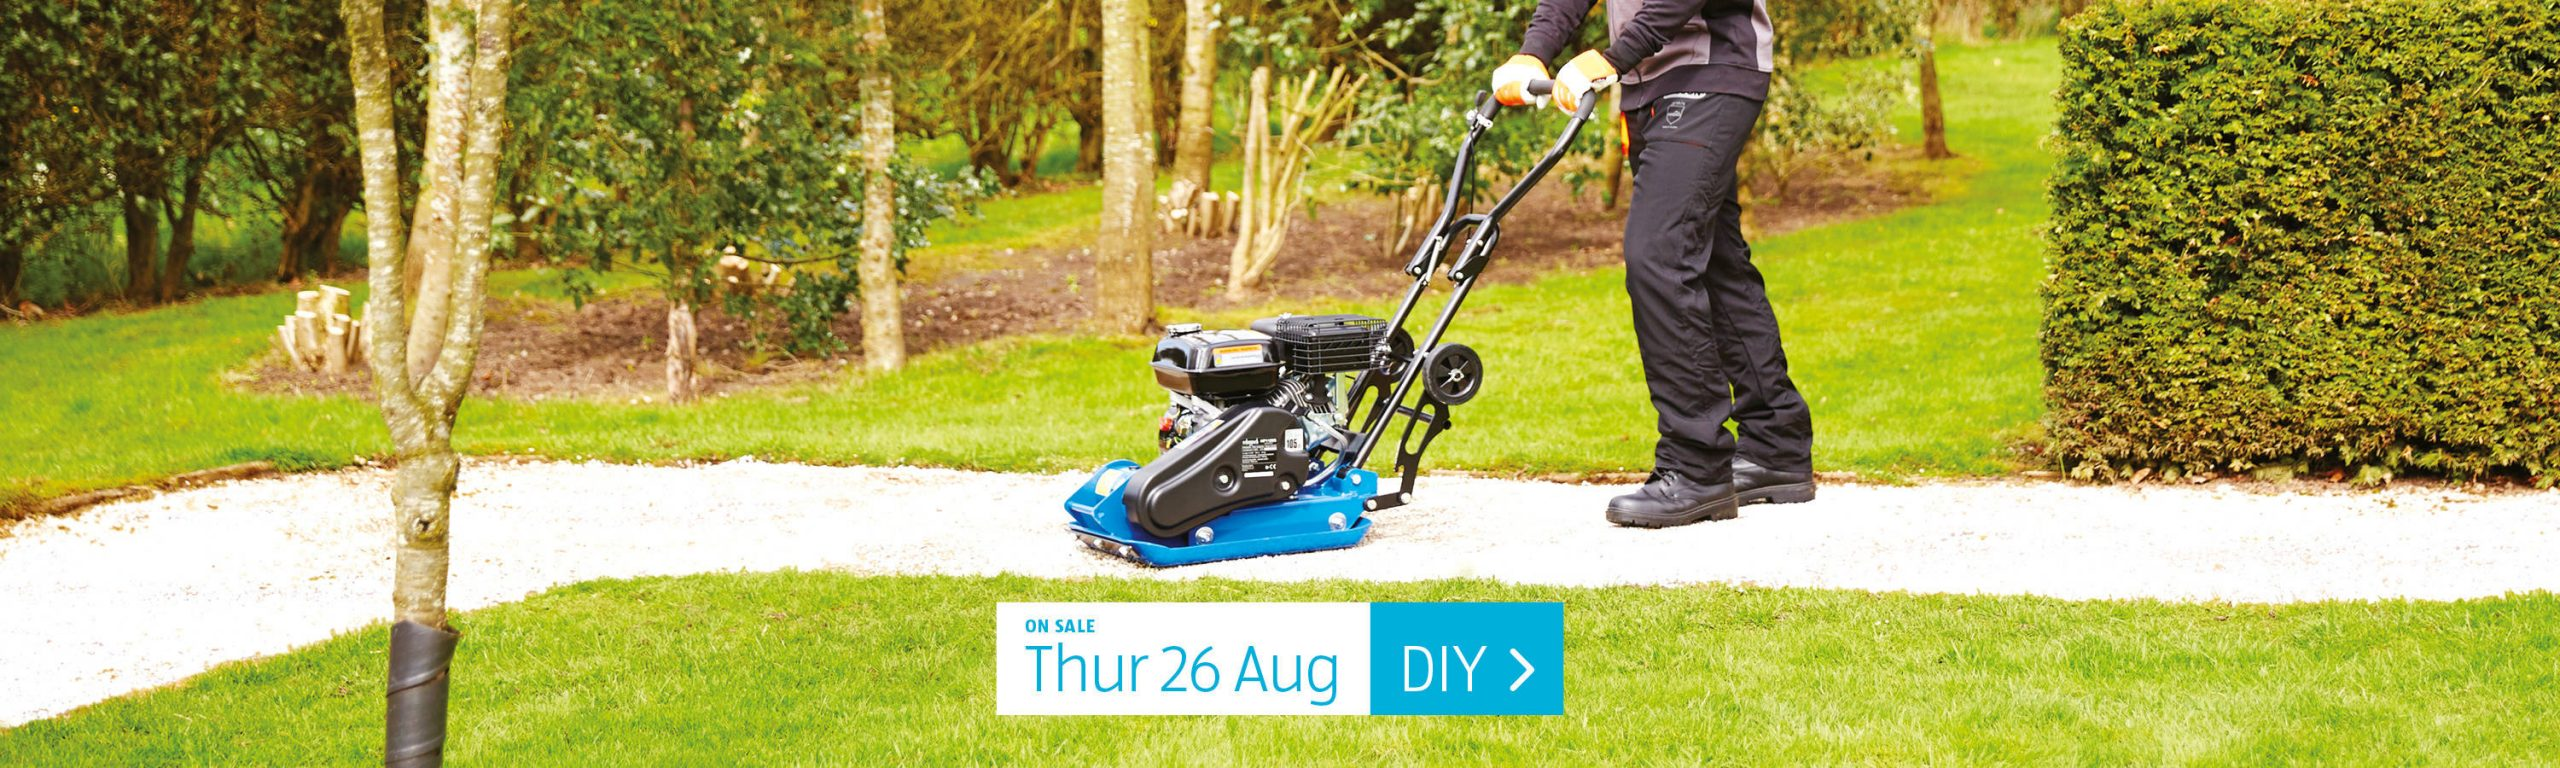 ALDI Thursday Offers DIY Tools 26th August 2021